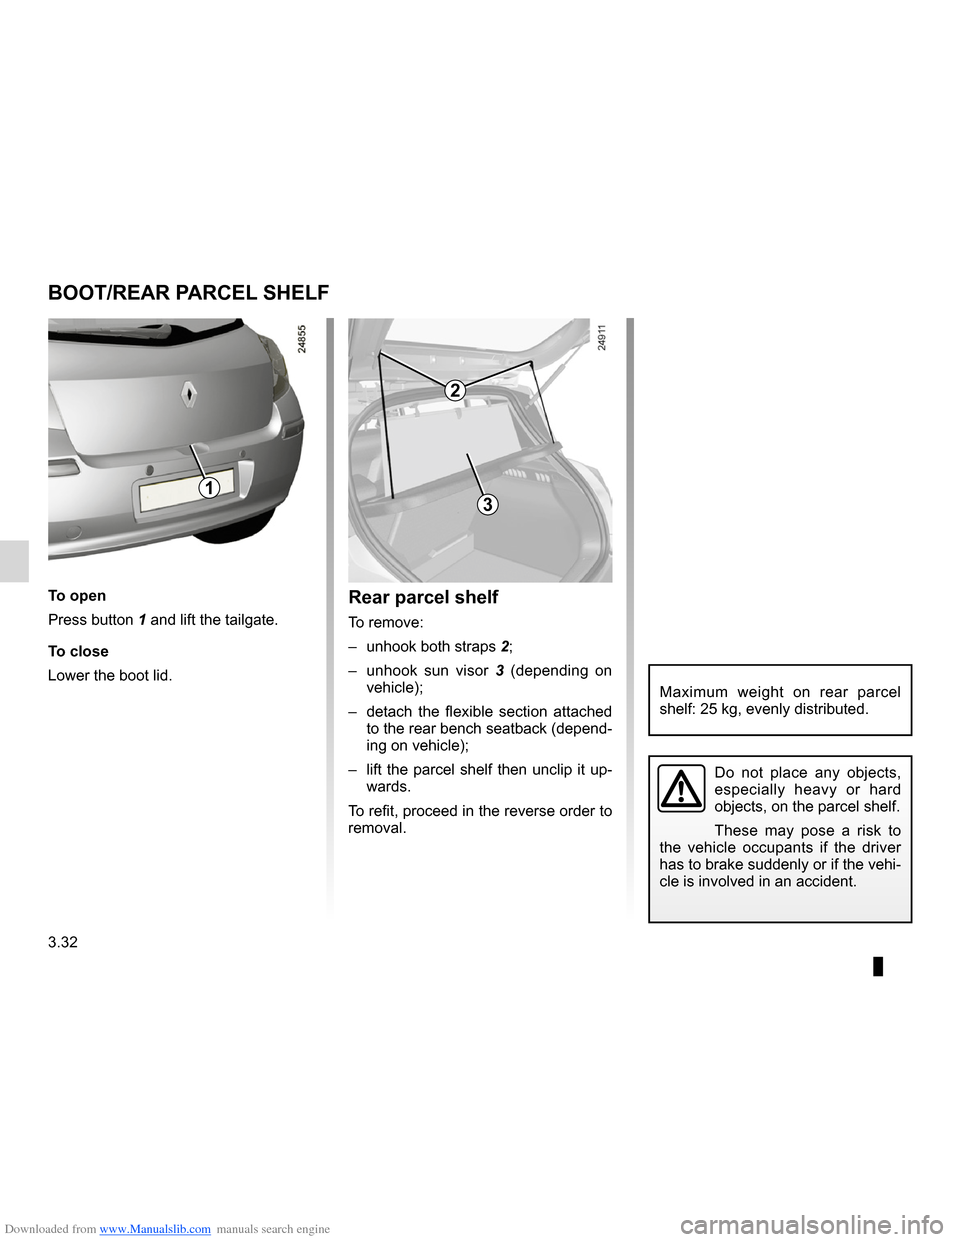 RENAULT CLIO 2012 X85 / 3.G Owners Manual, Page 166